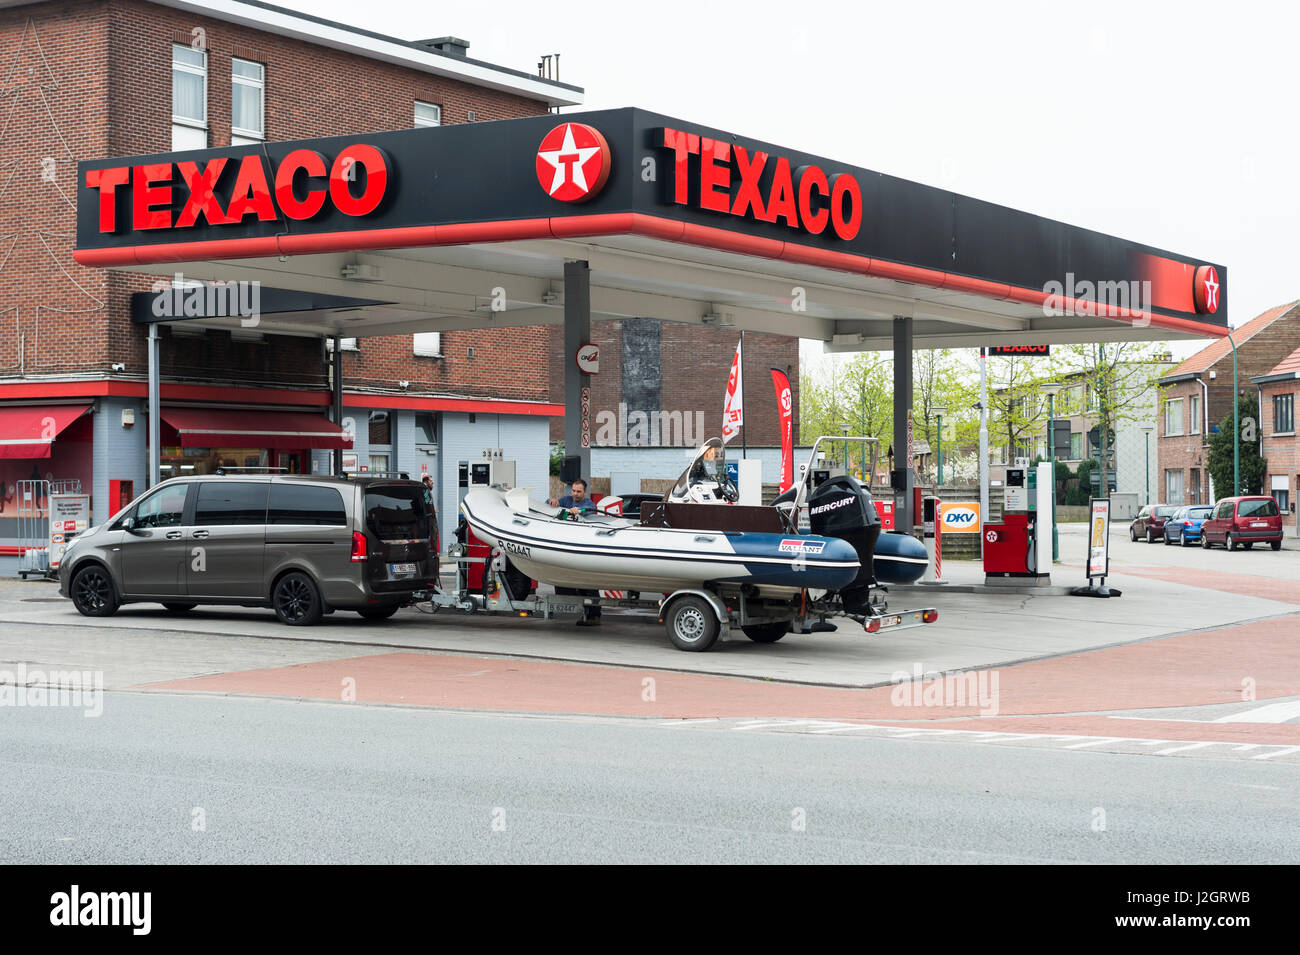 Texaco Sign Stock Photos & Texaco Sign Stock Images - Alamy